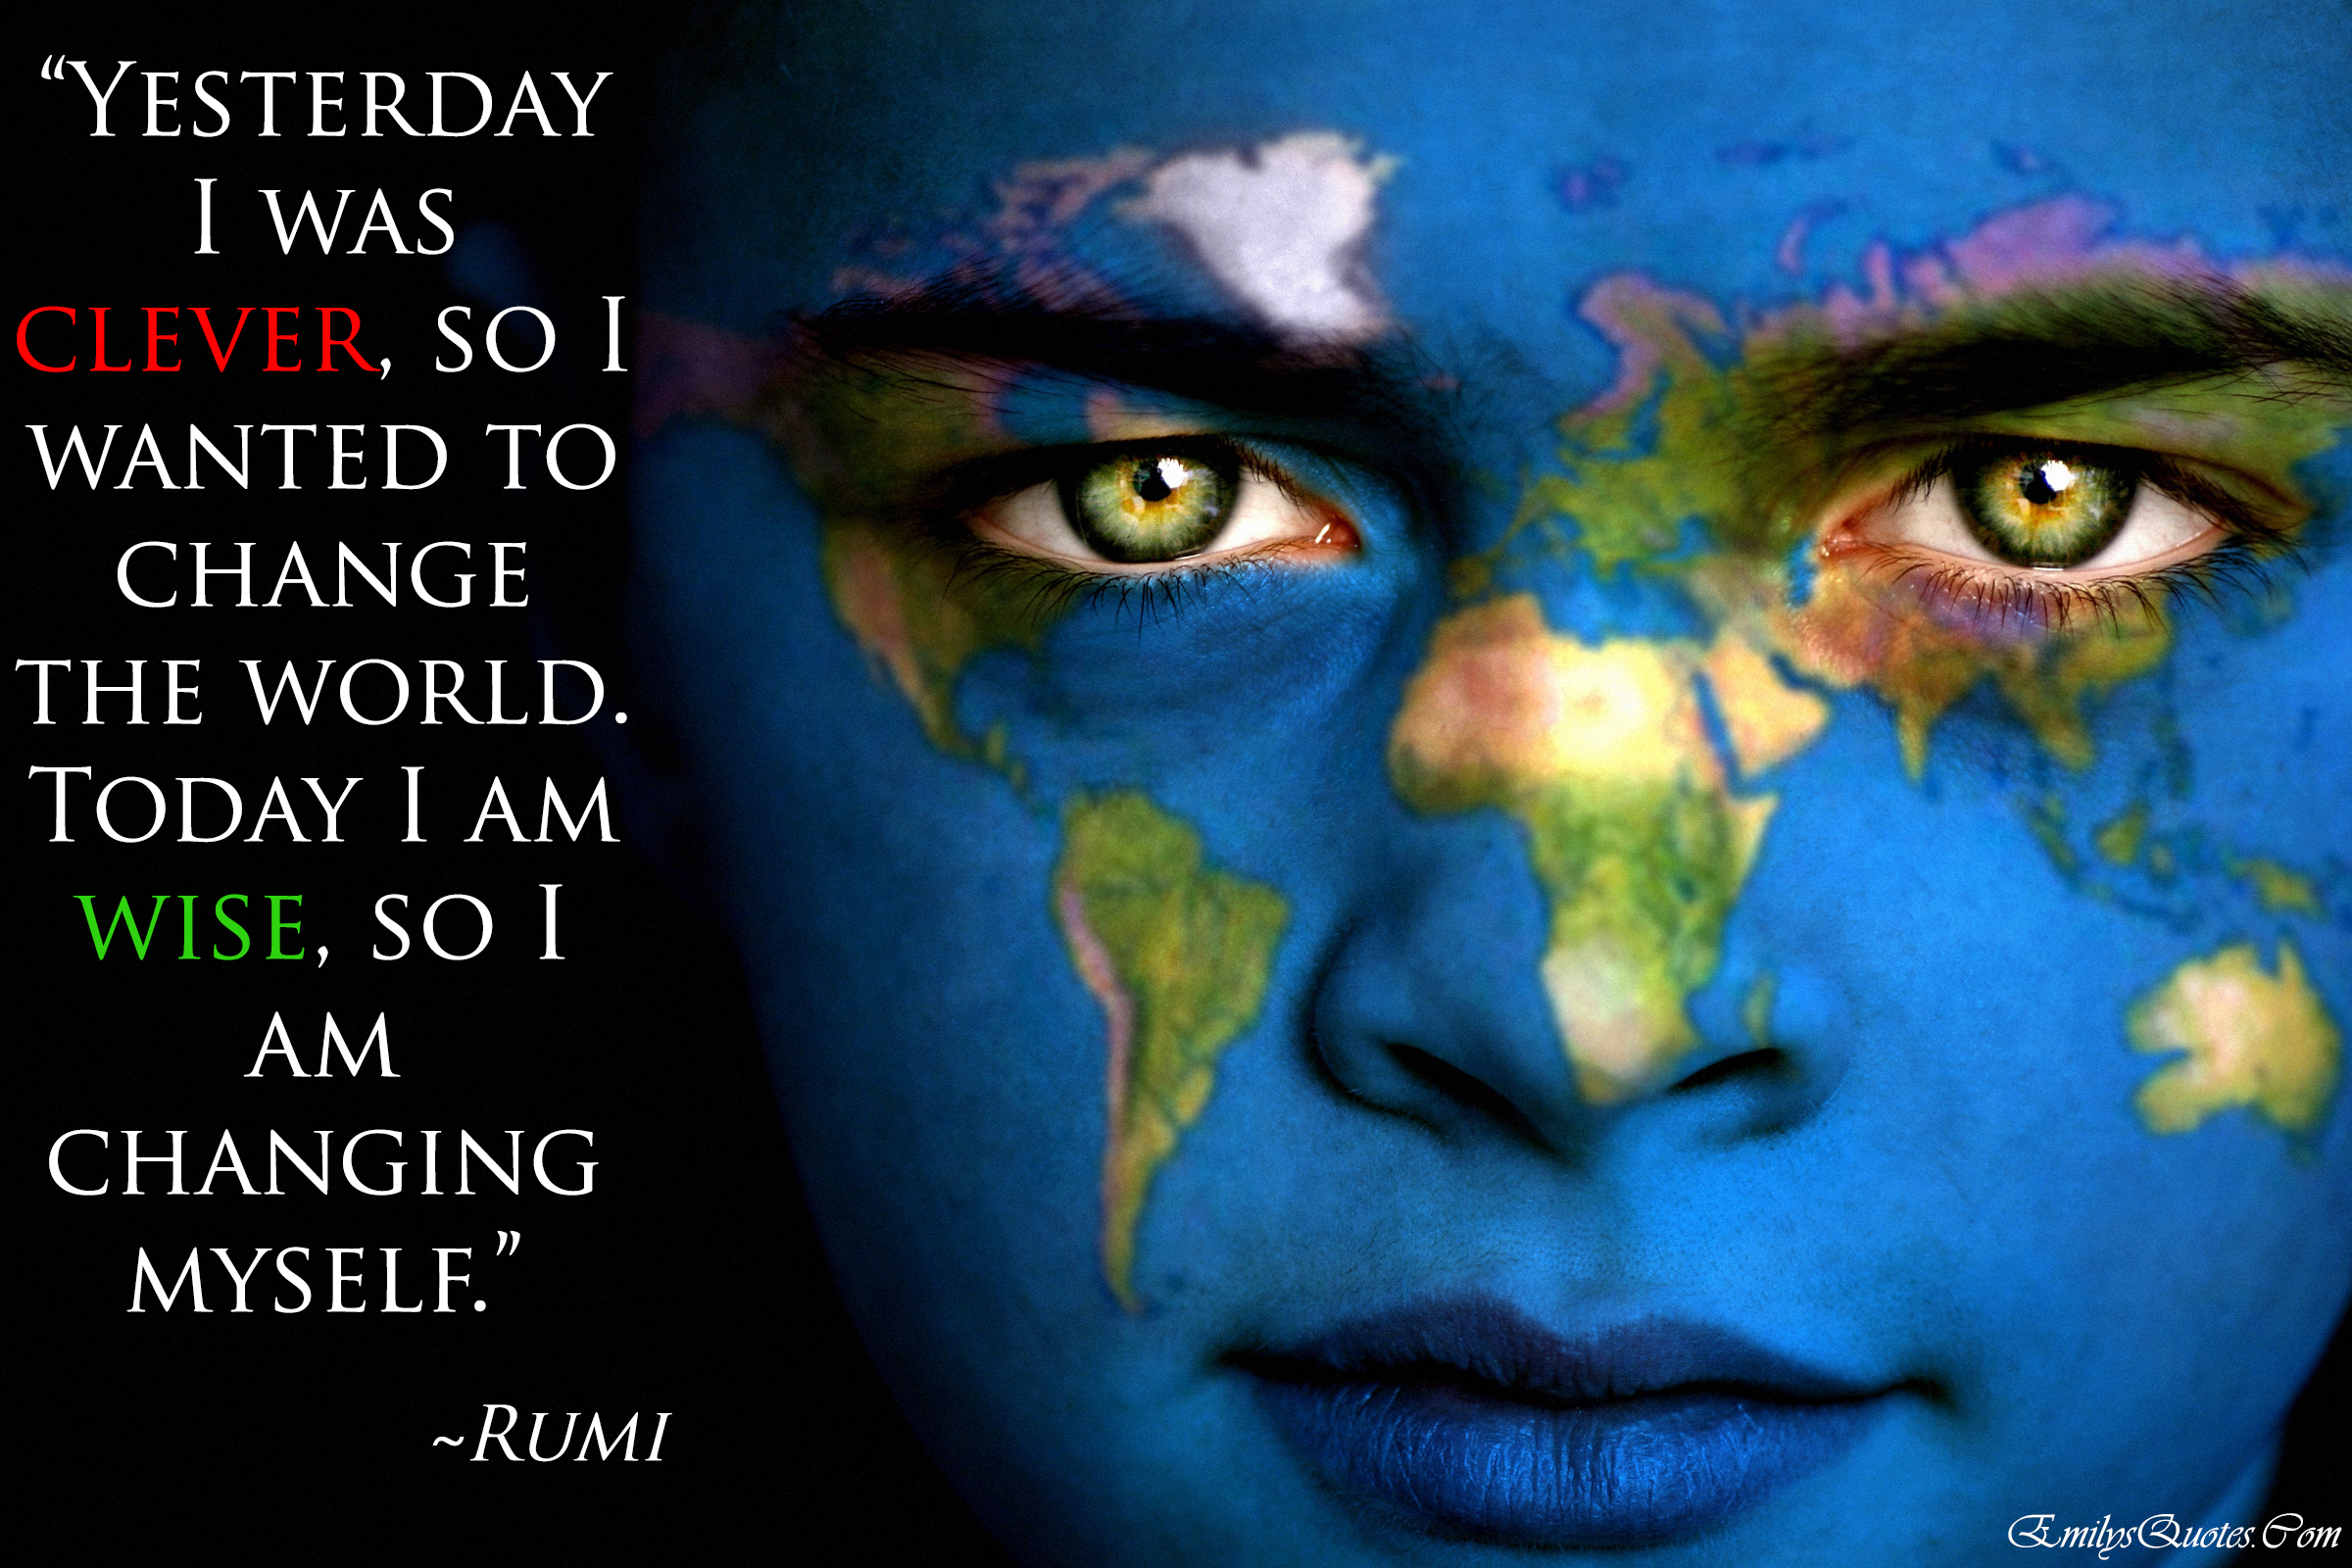 EmilysQuotes.Com - amazing, great, wisdom, change, Rumi, clever, wise, world